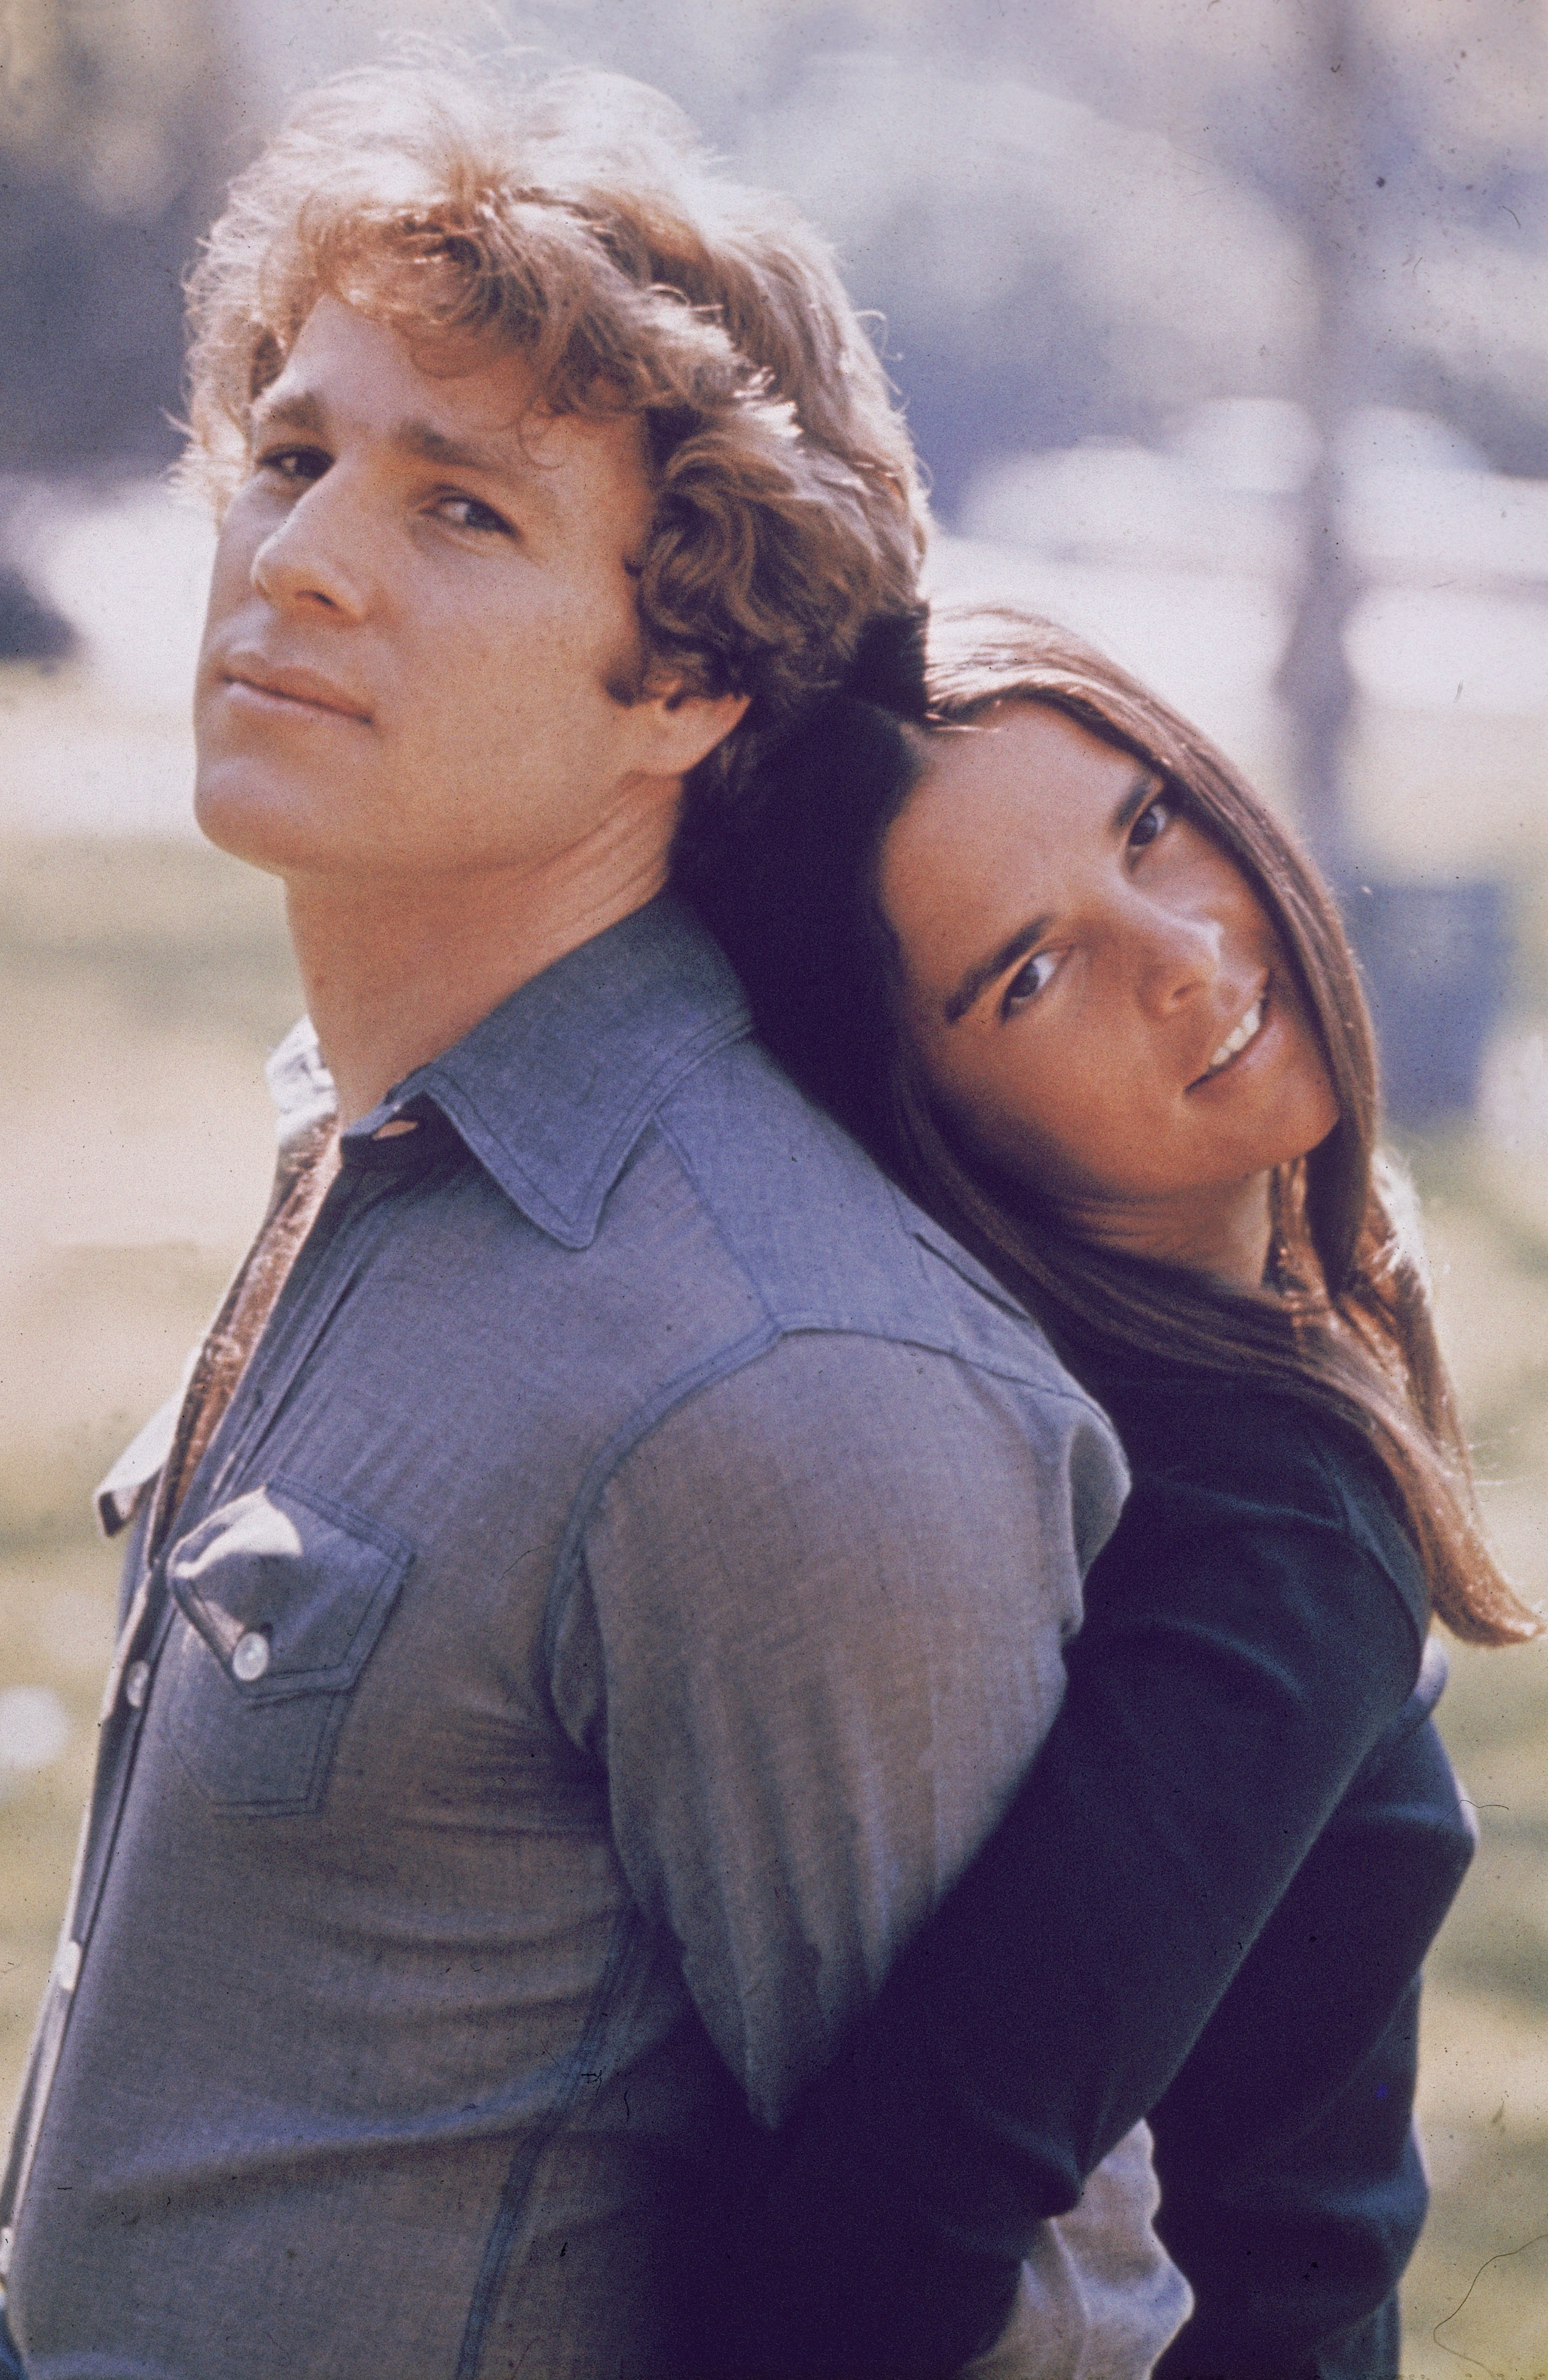 """Ryan O'Neal and Ali MacGraw stand back to back outdoors in a still from the film, """"Love Story,"""" circa 1970   Photo: Getty Images"""